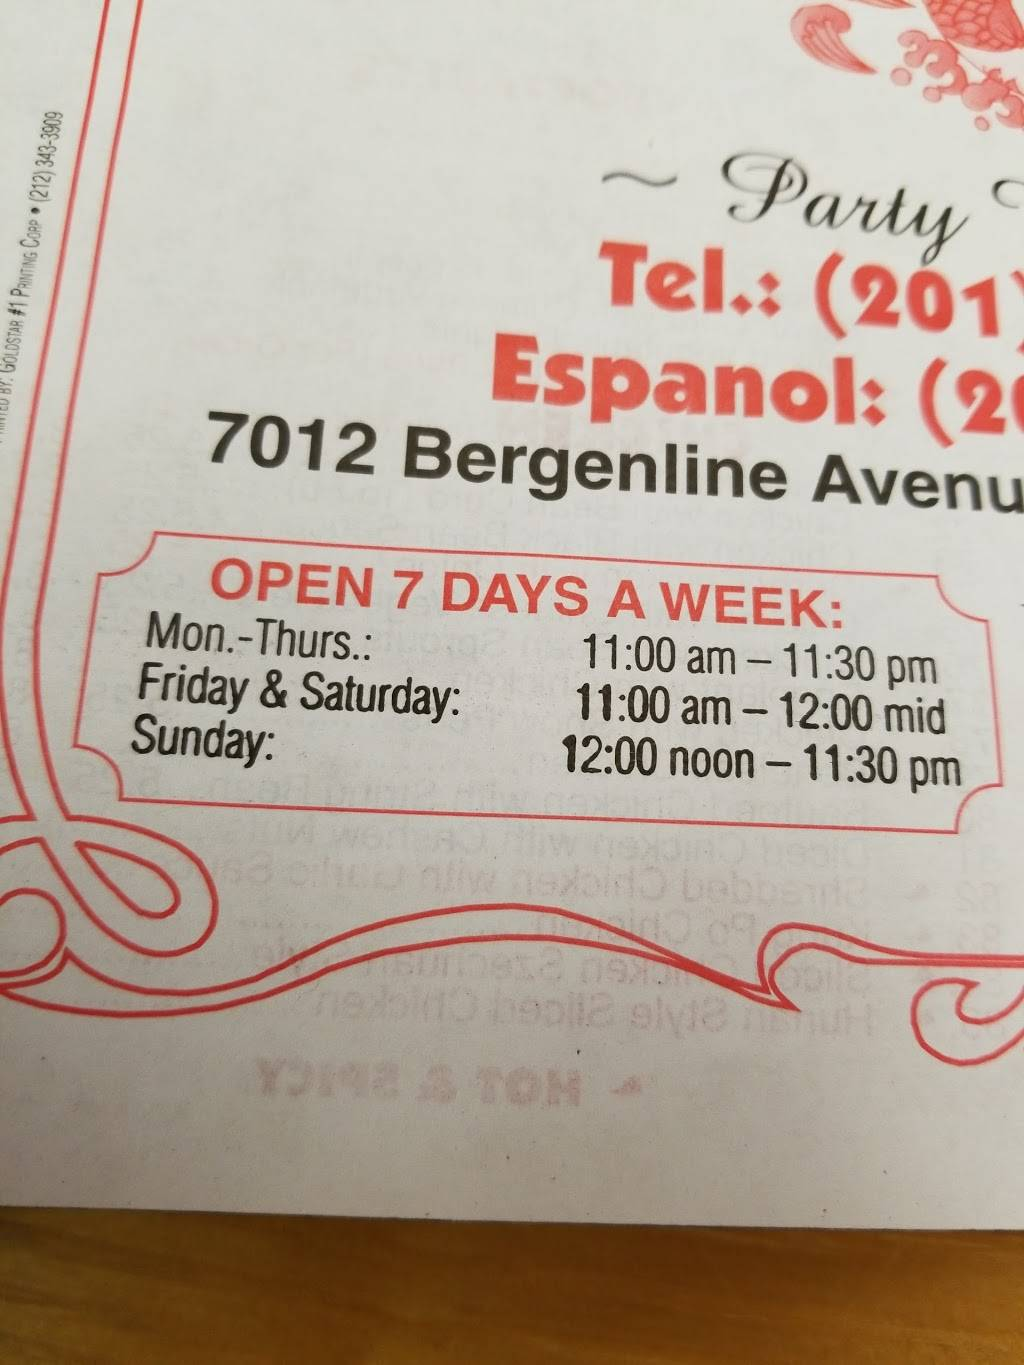 China Wok | restaurant | 7012 Bergenline Ave, North Bergen, NJ 07047, USA | 2018690164 OR +1 201-869-0164